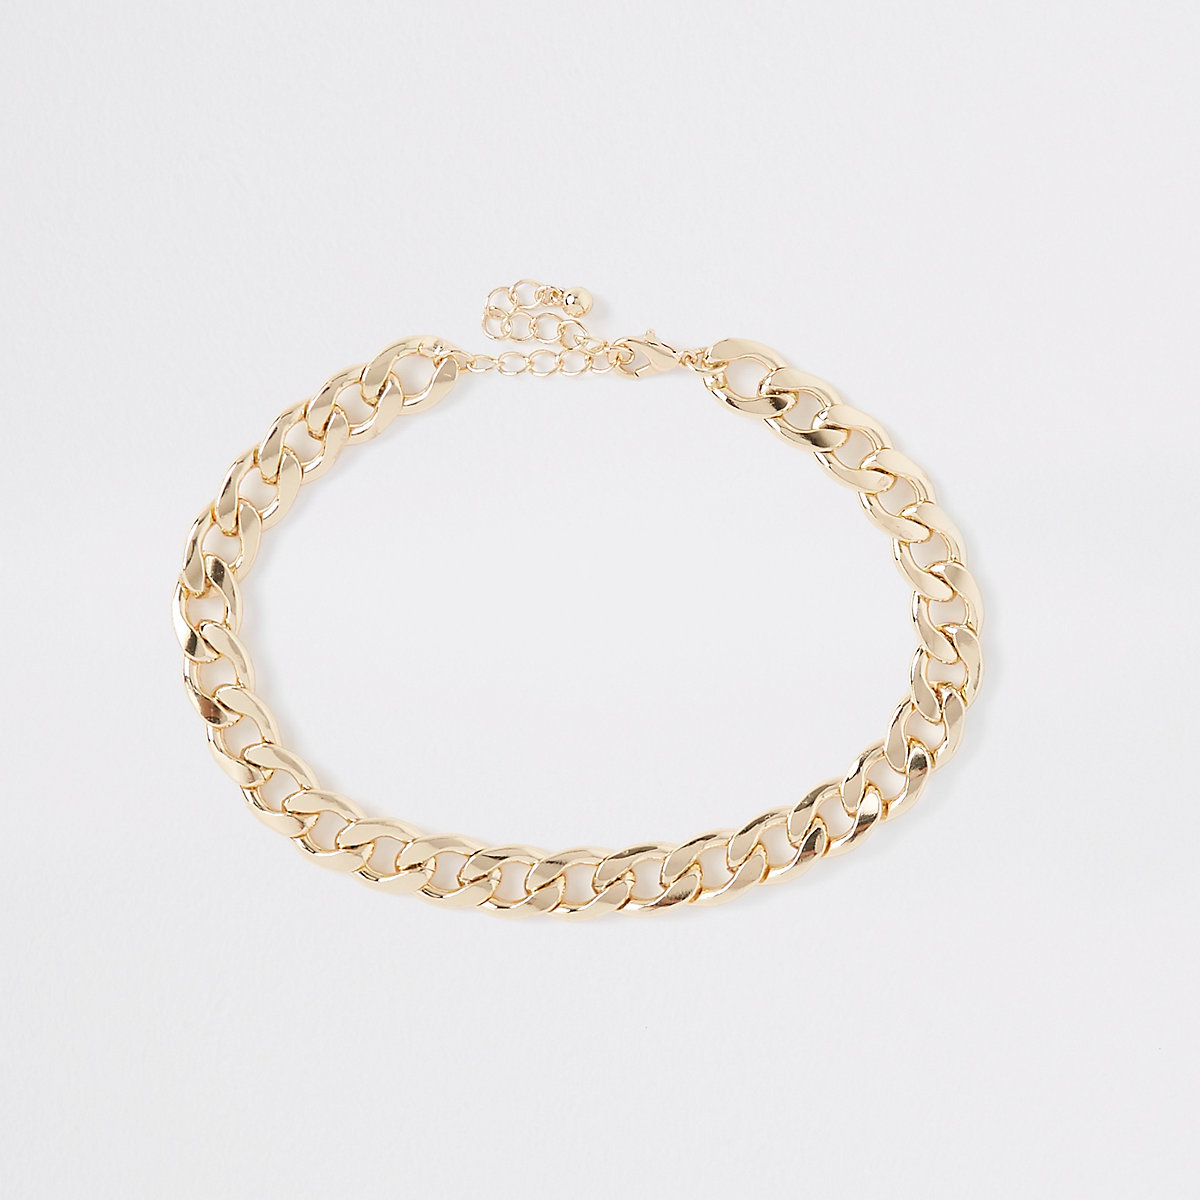 Gold color chunky curb chain choker